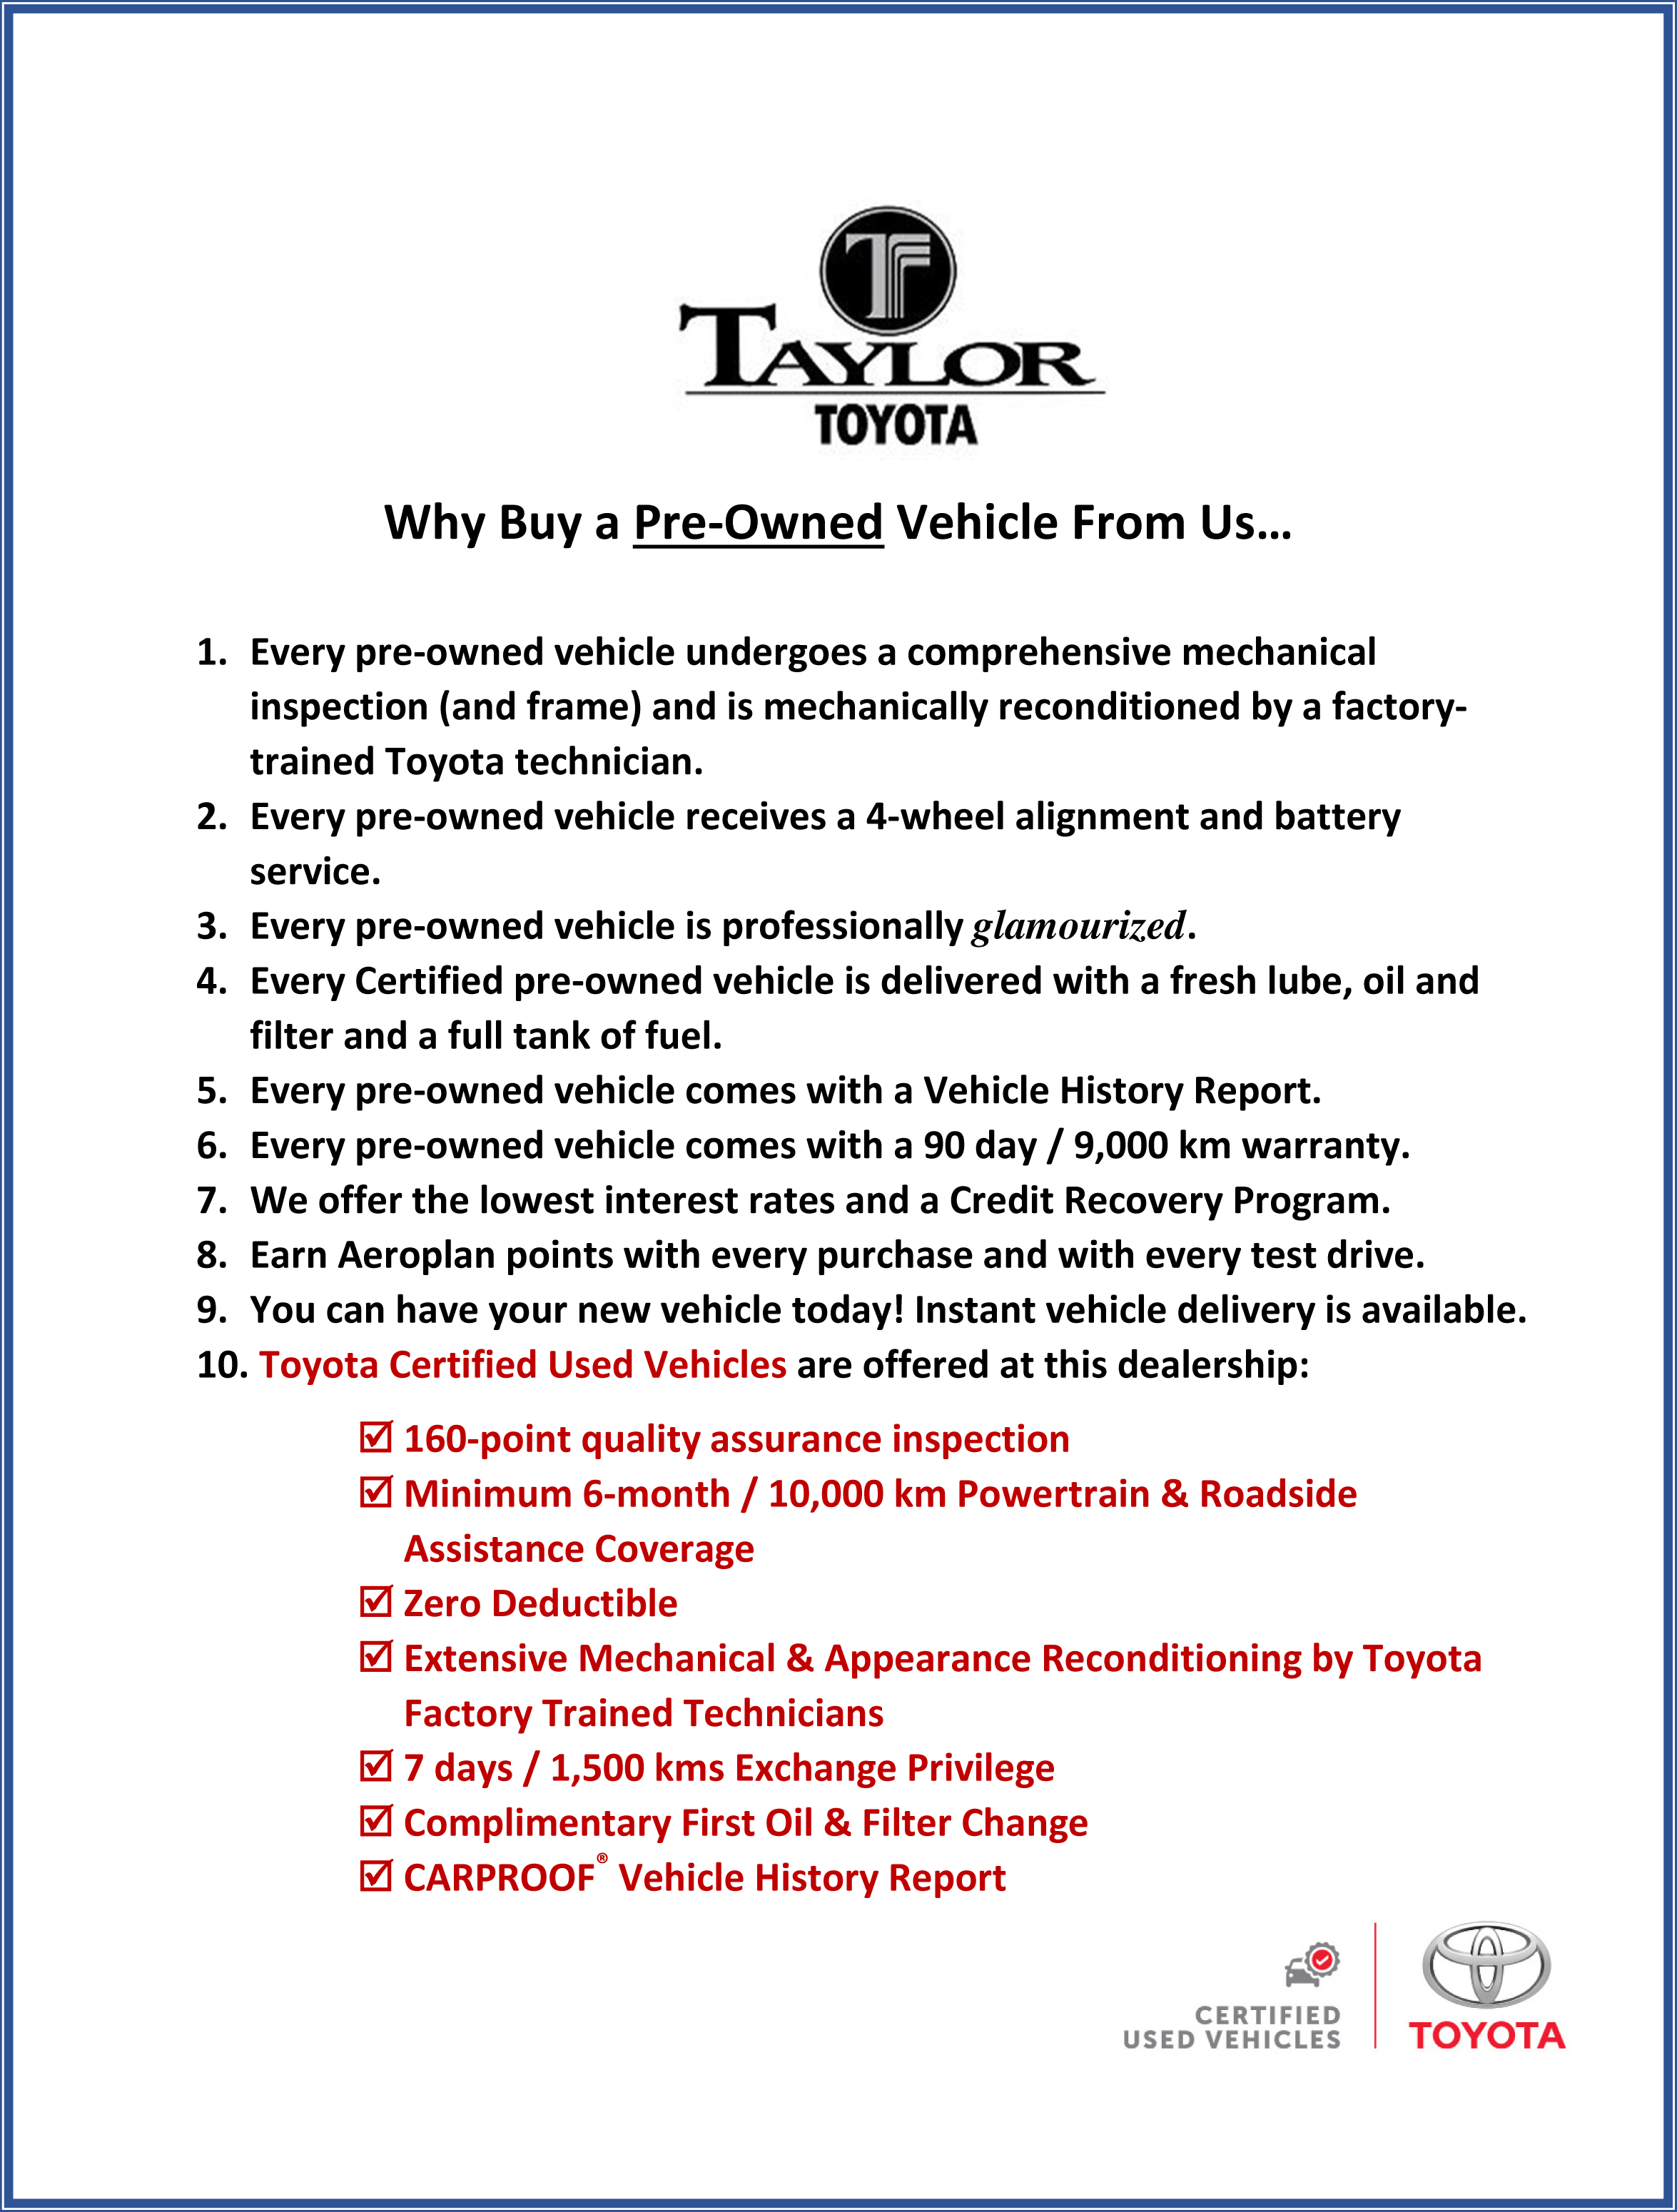 why buy pre-owned - Toyota